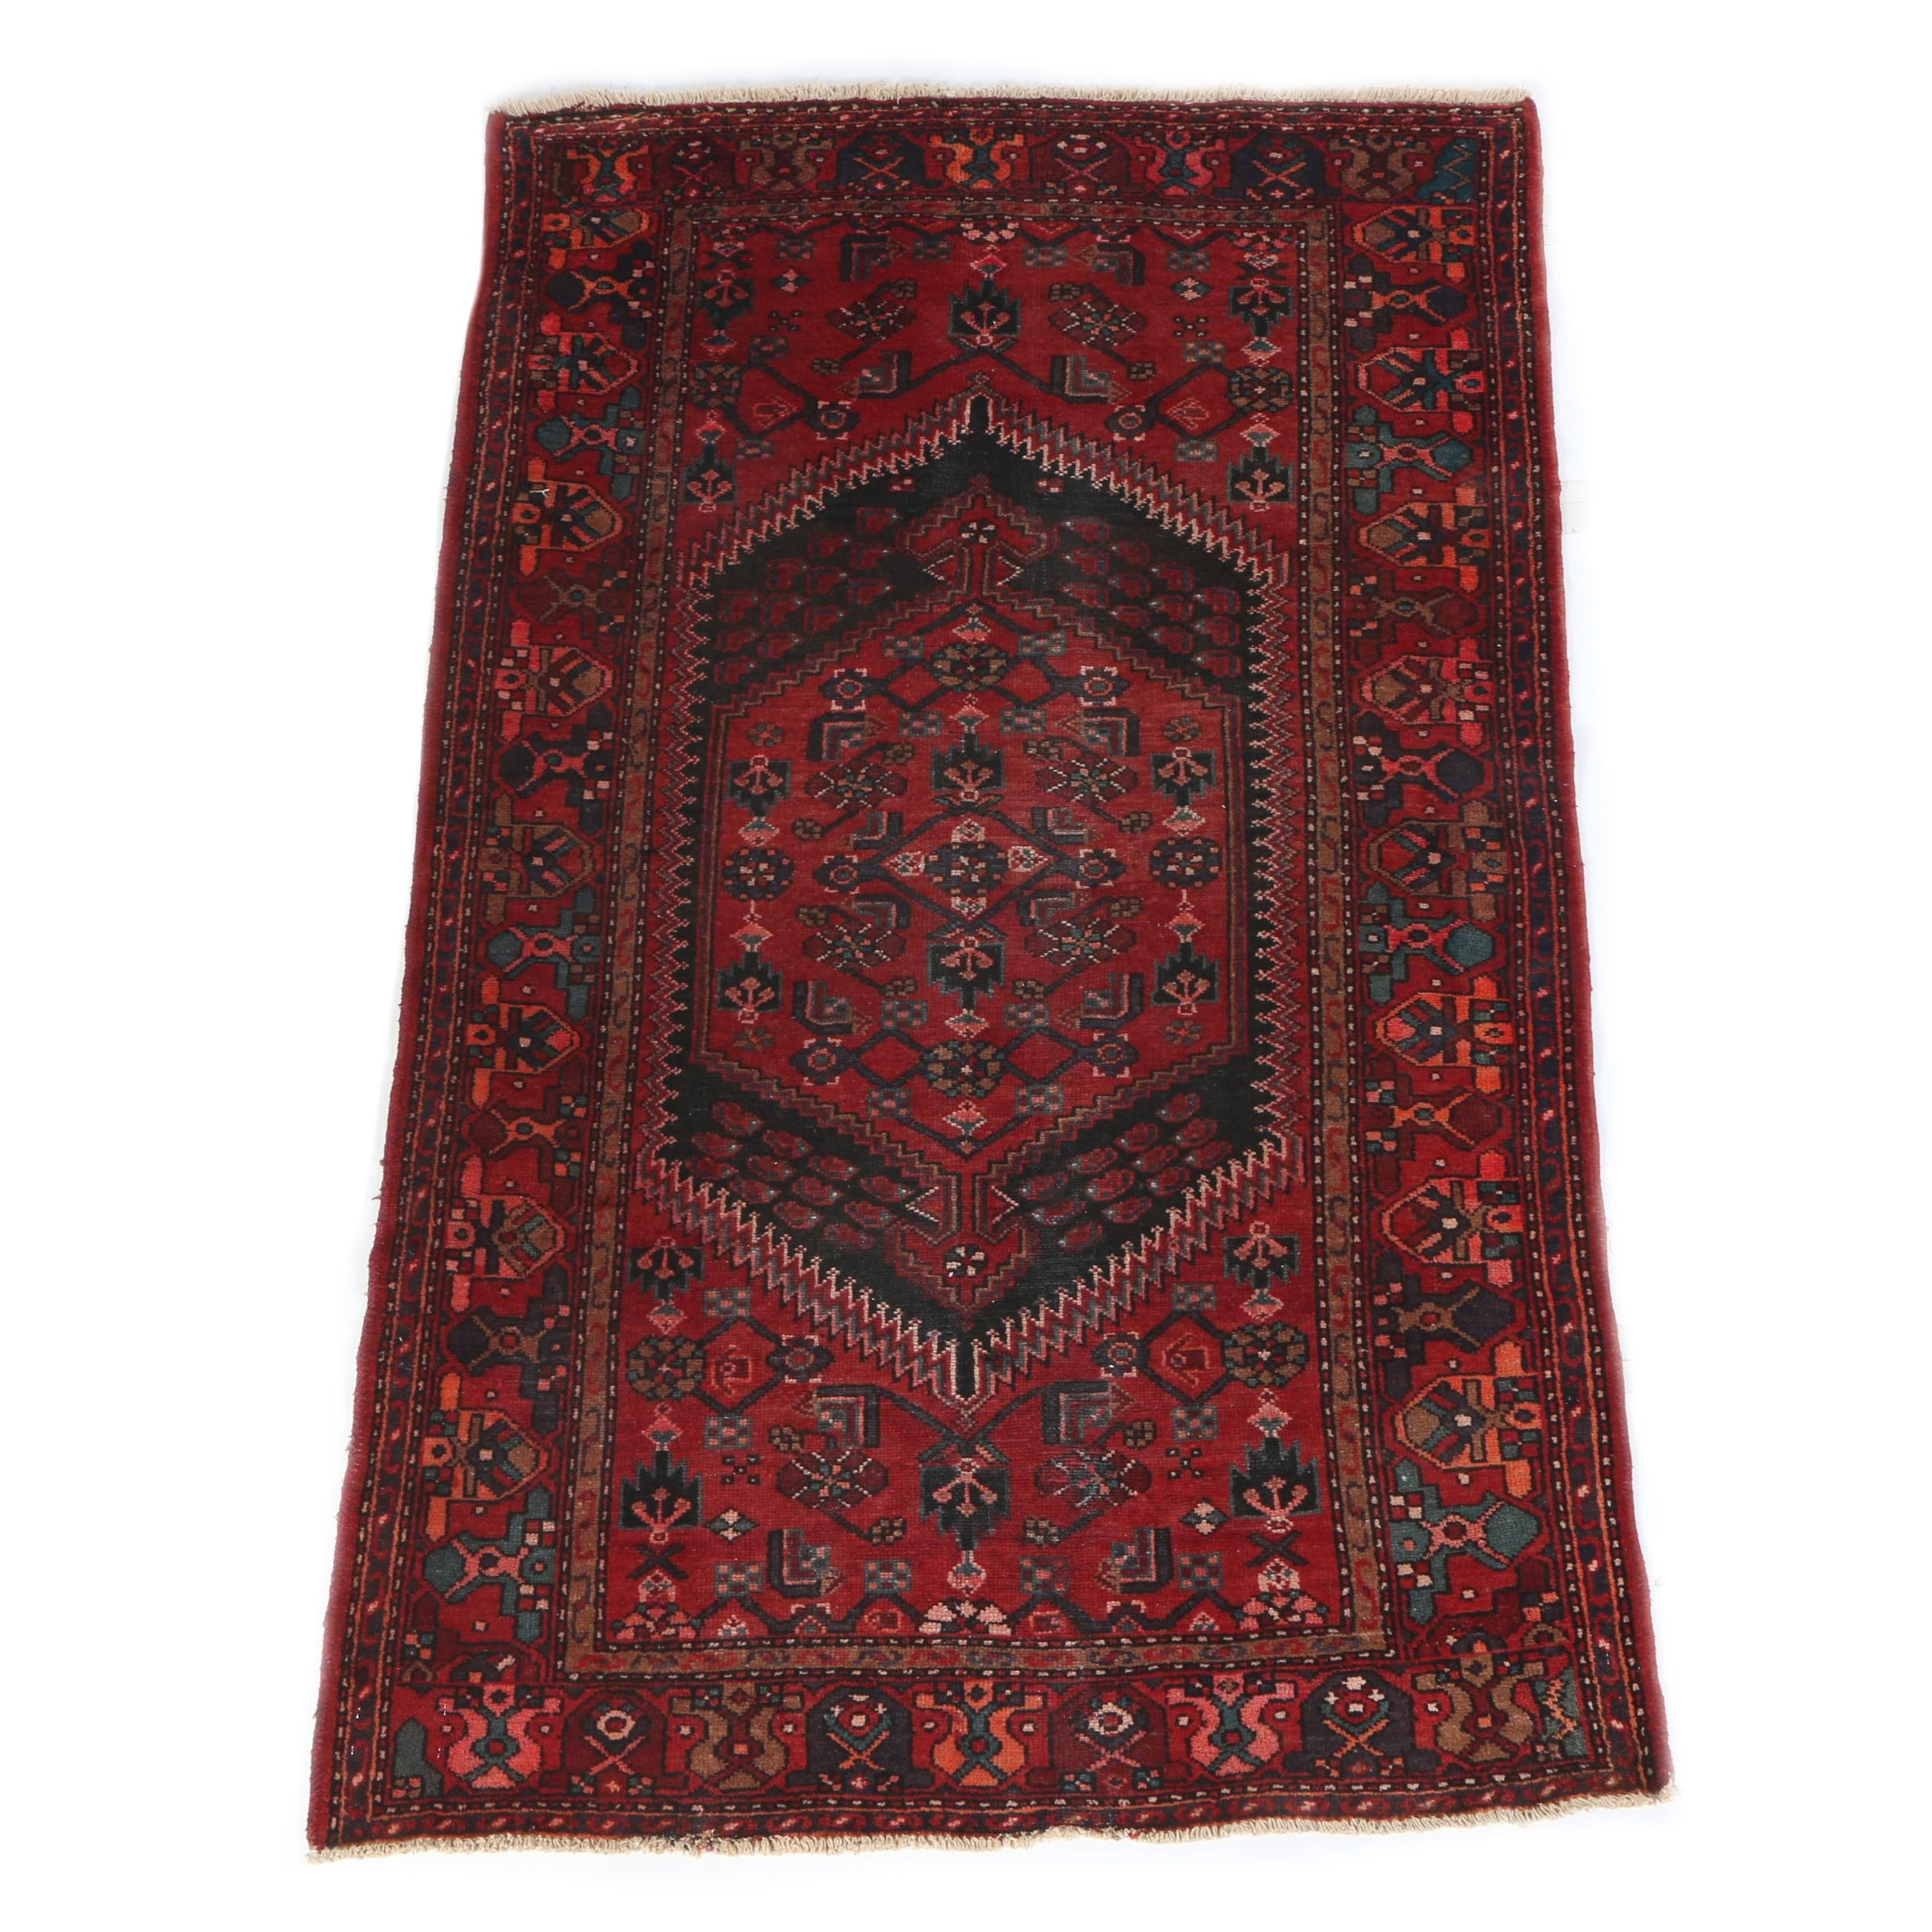 Vintage Hand-Knotted Persian Kurdish Bijar Wool Area Rug